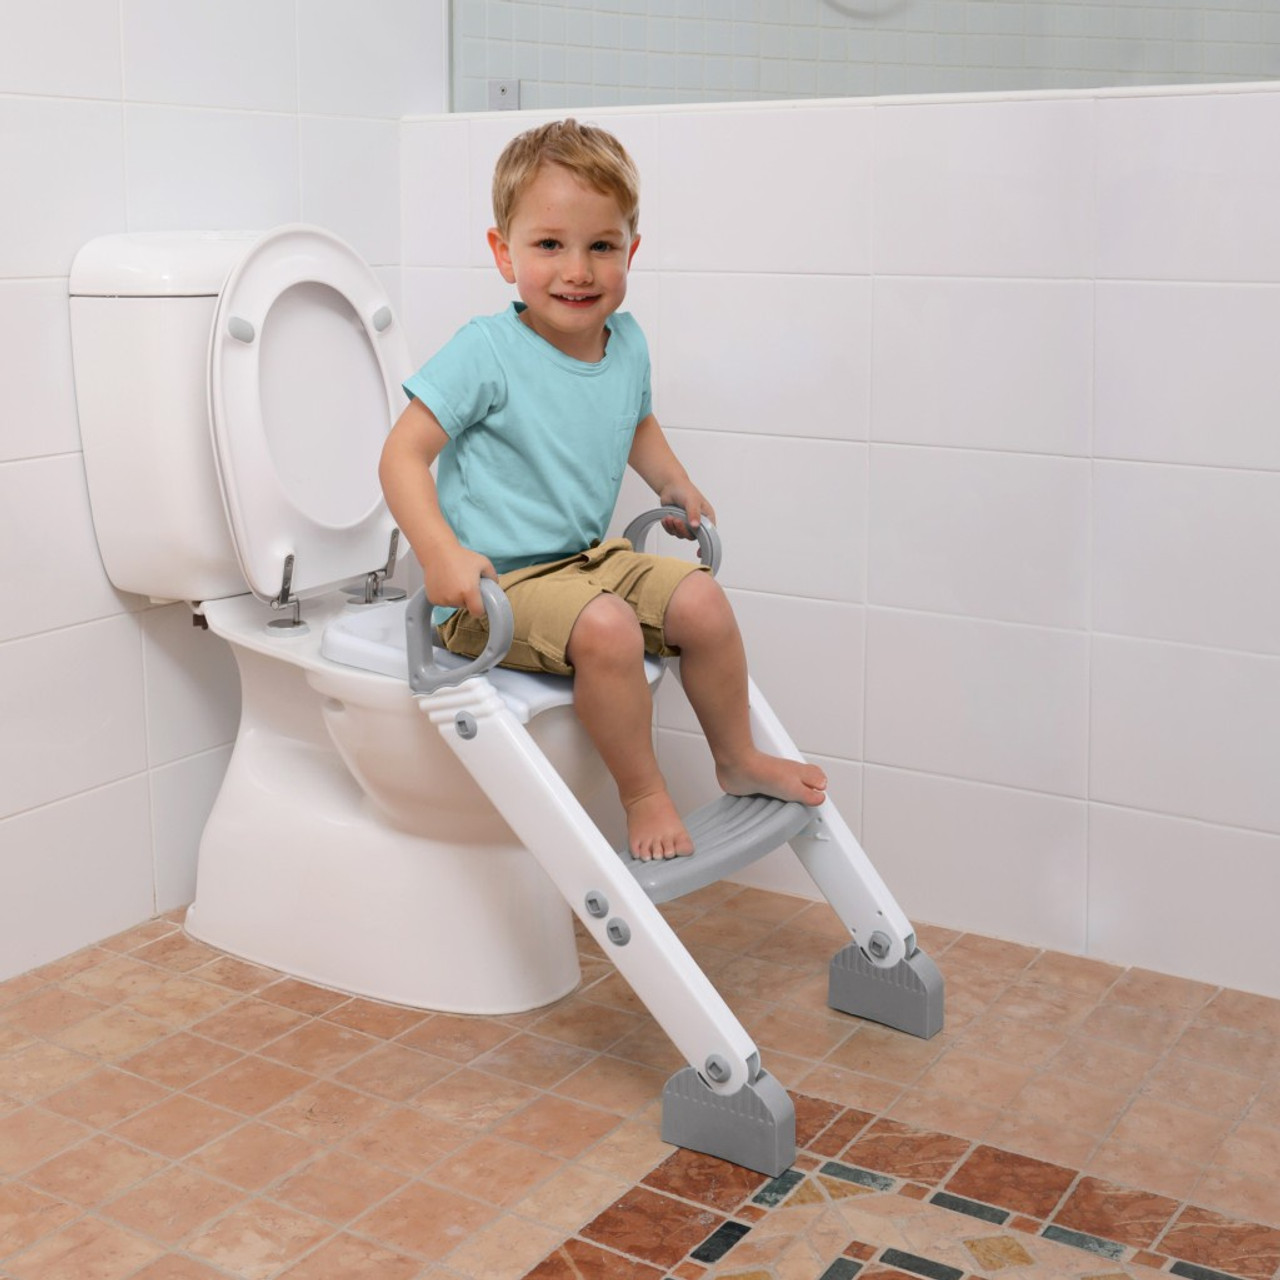 Dreambaby Step-Up Toilet Topper Grey White at Baby Barn Discounts Dreambaby Step-Up Toilet Topper is a toilet trainer that makes toilet training even easier.